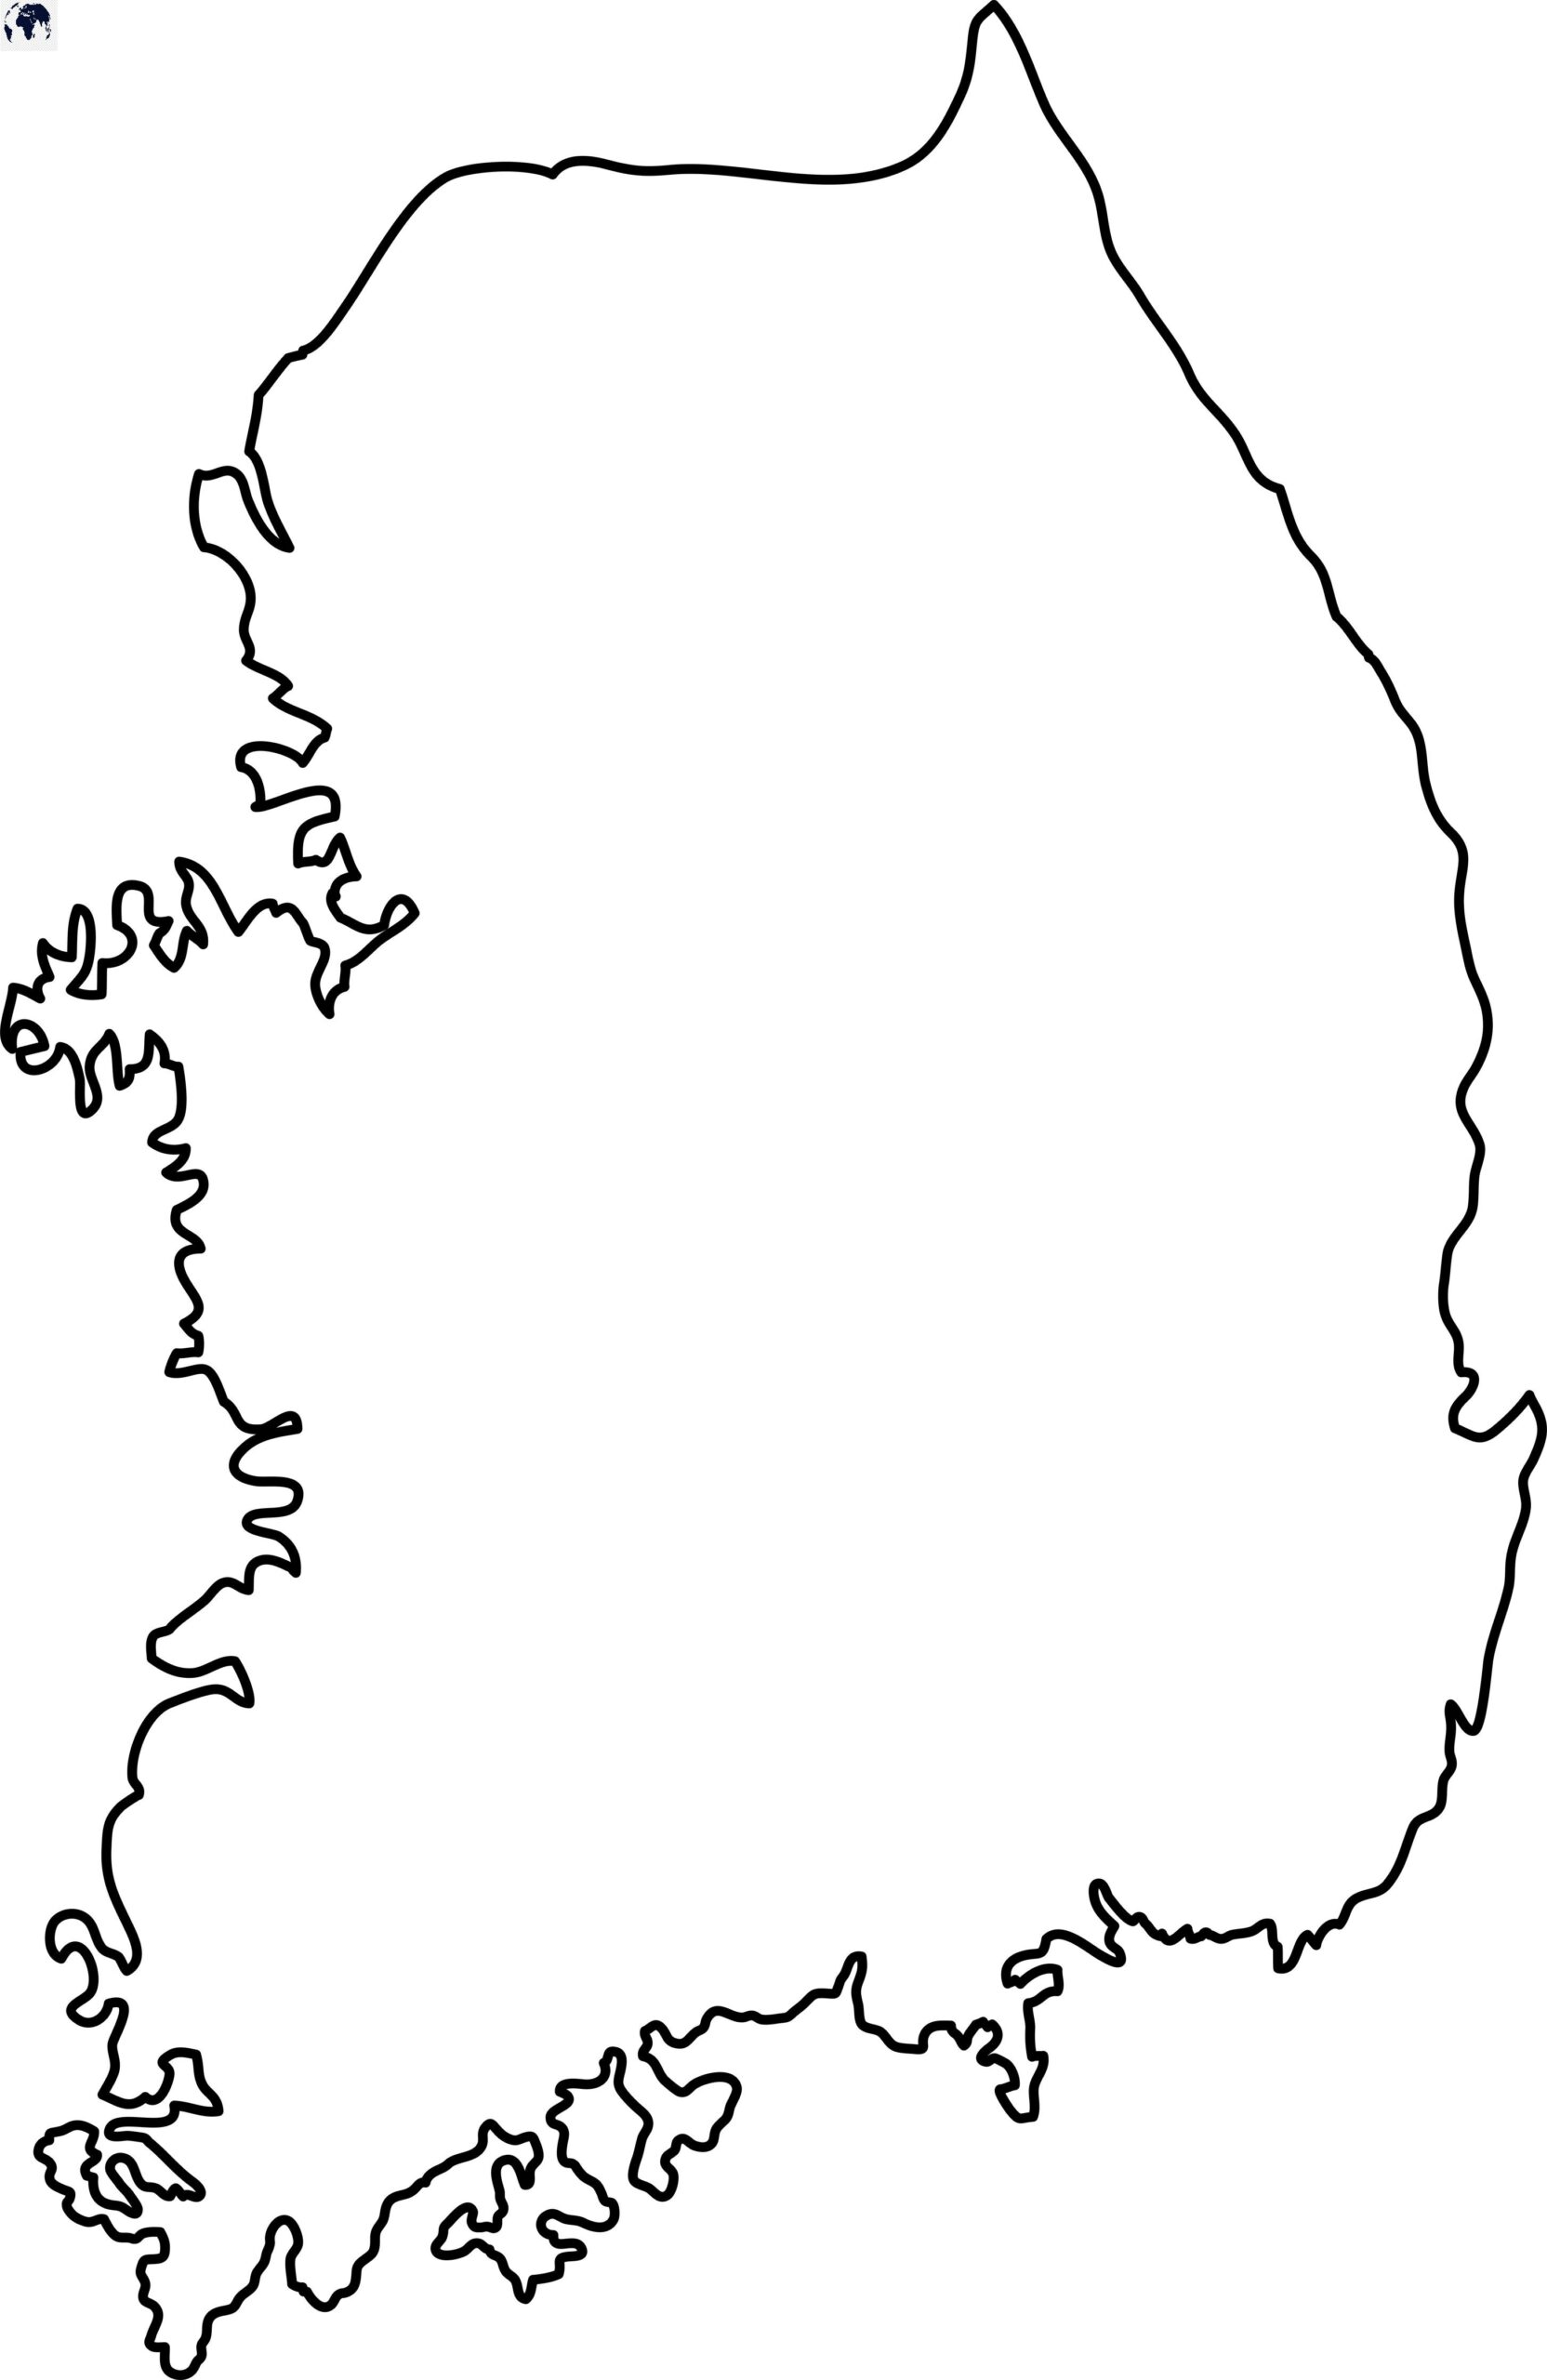 Blank Map of South Korea - Outline